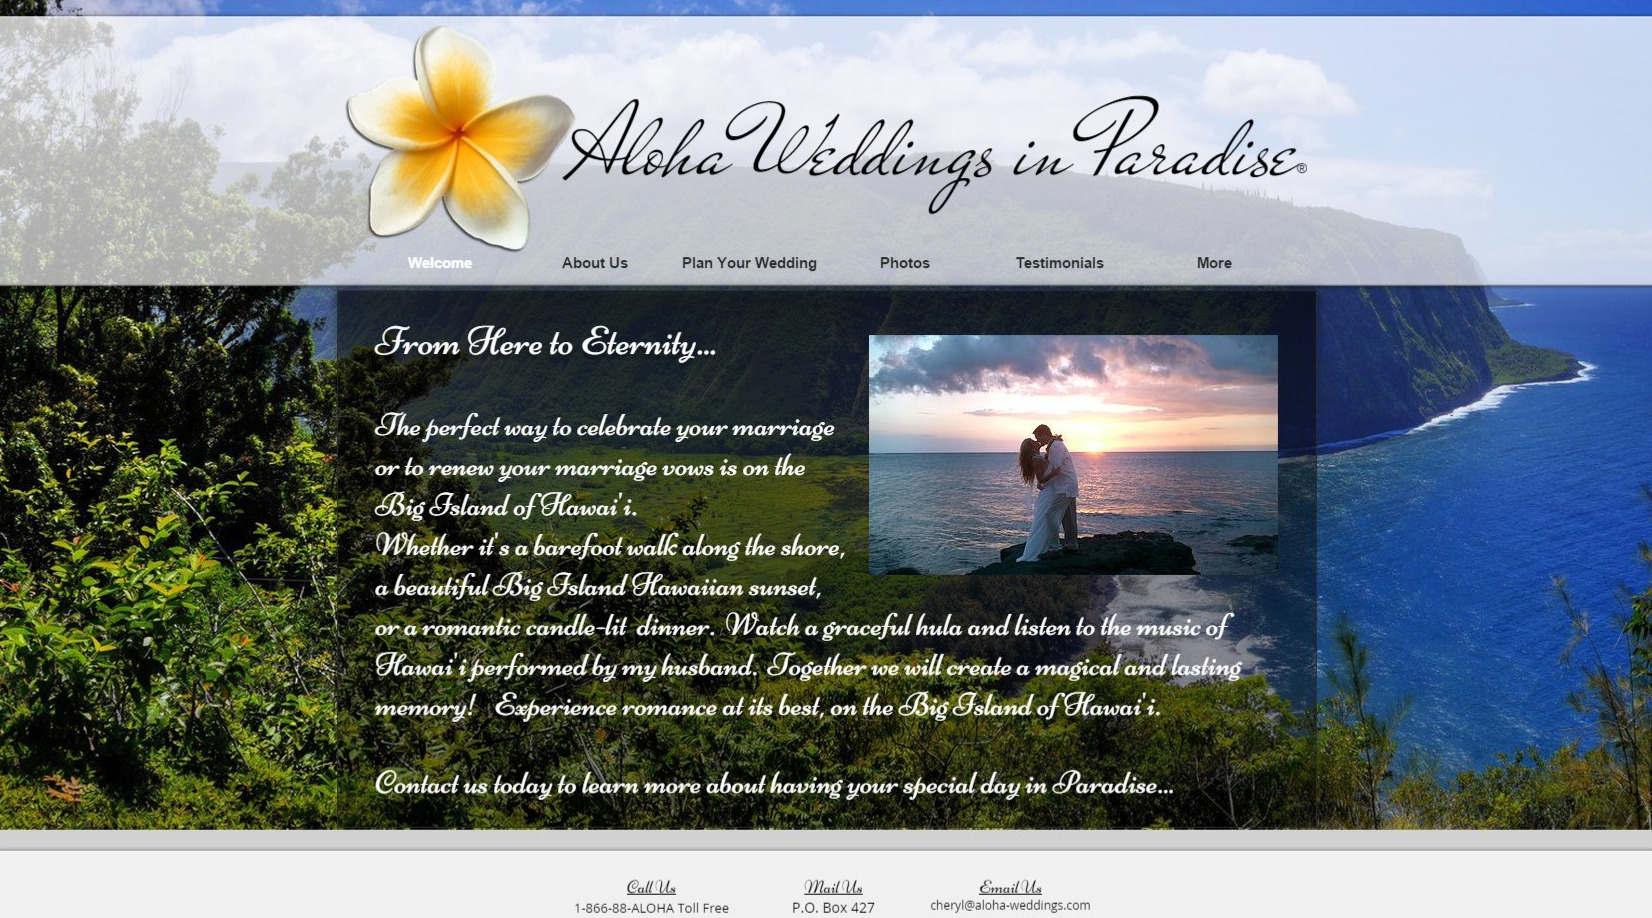 Aloha Weddings in Paradise_edited